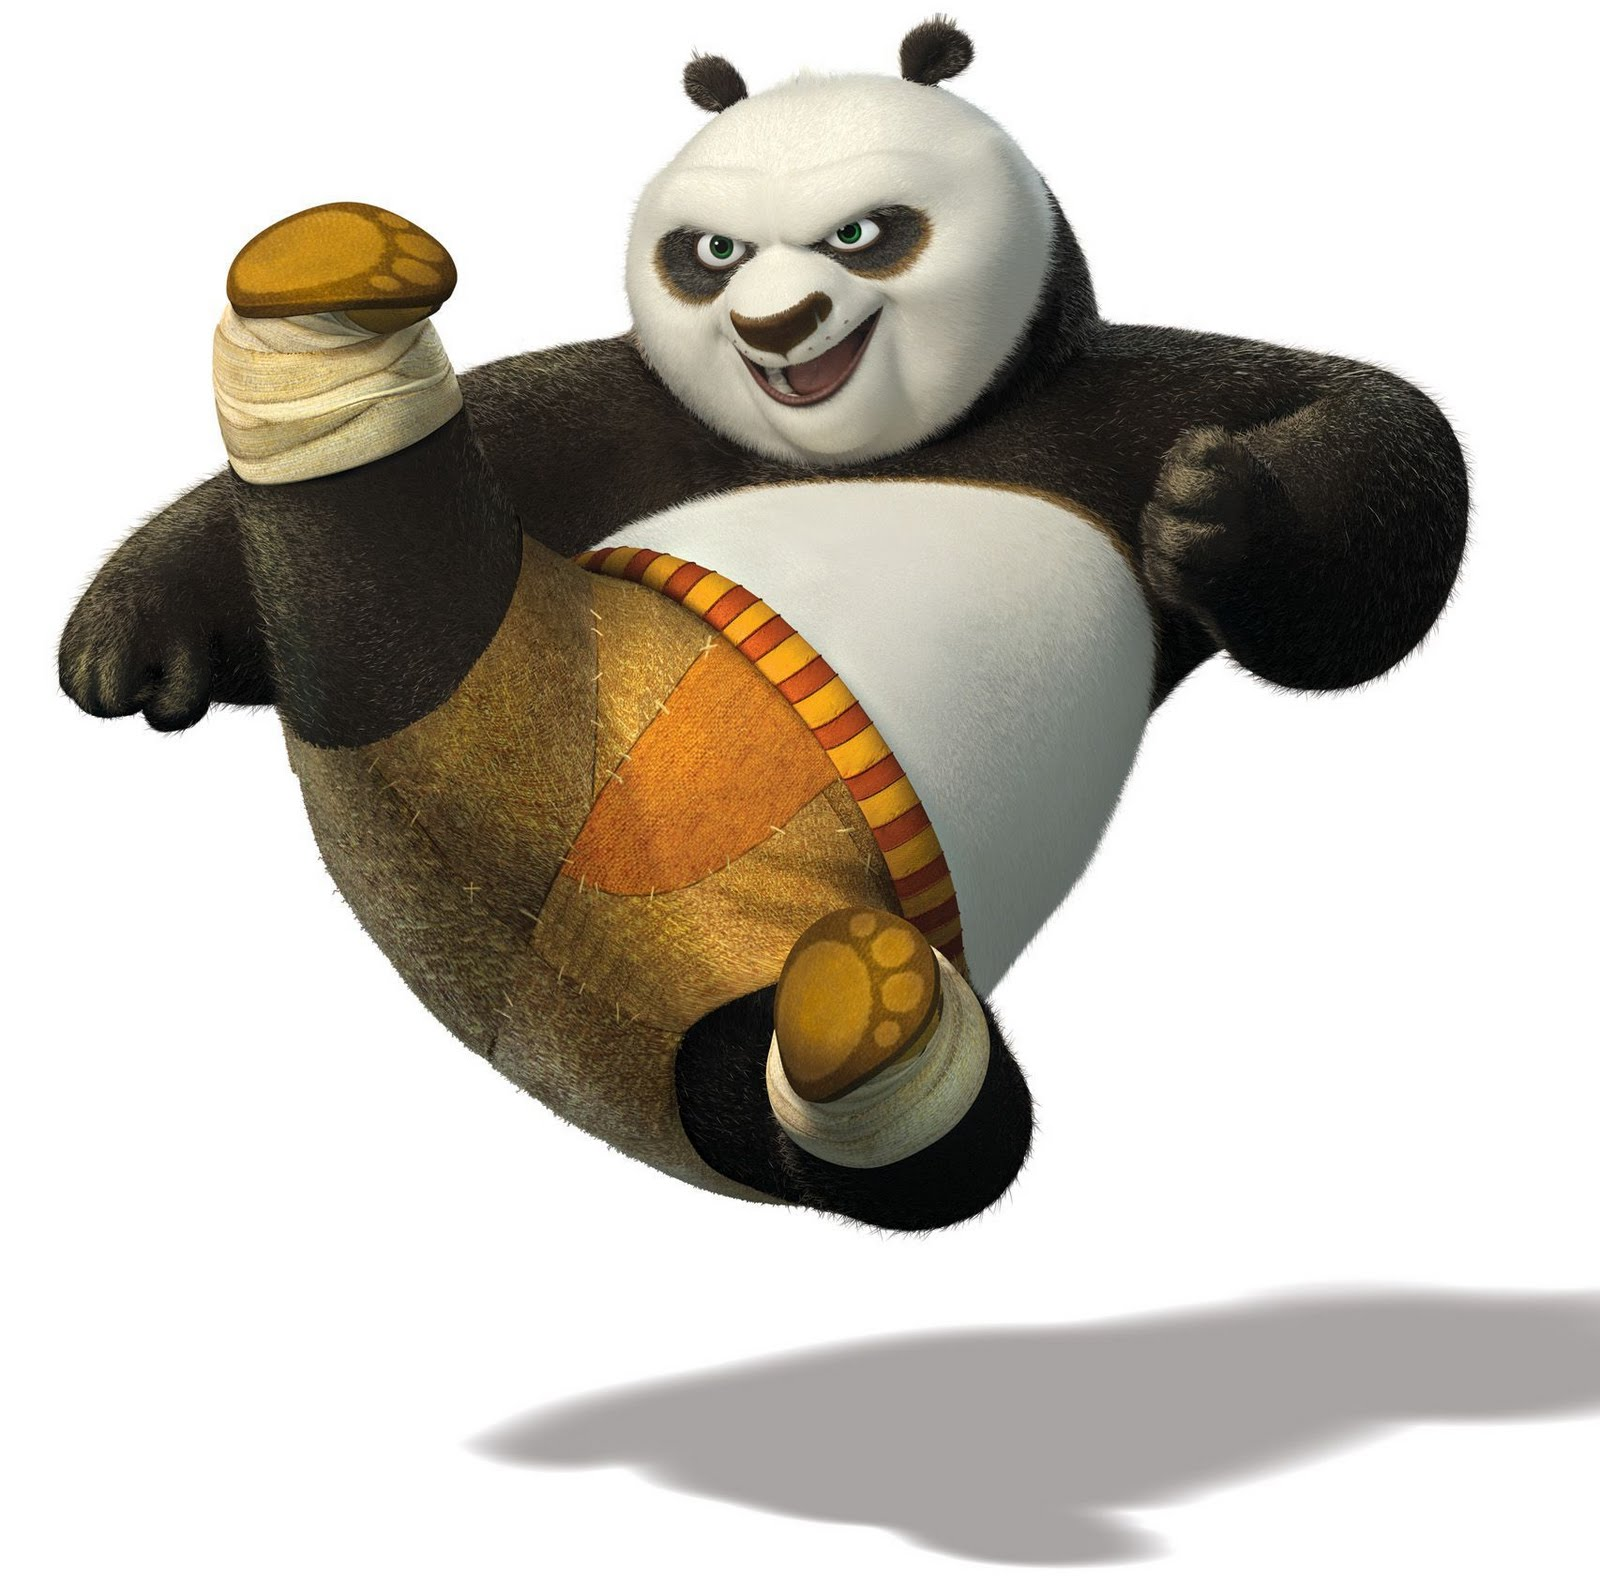 Free Kung Fu Panda 2 Desktop Wallpapers Wallpaper